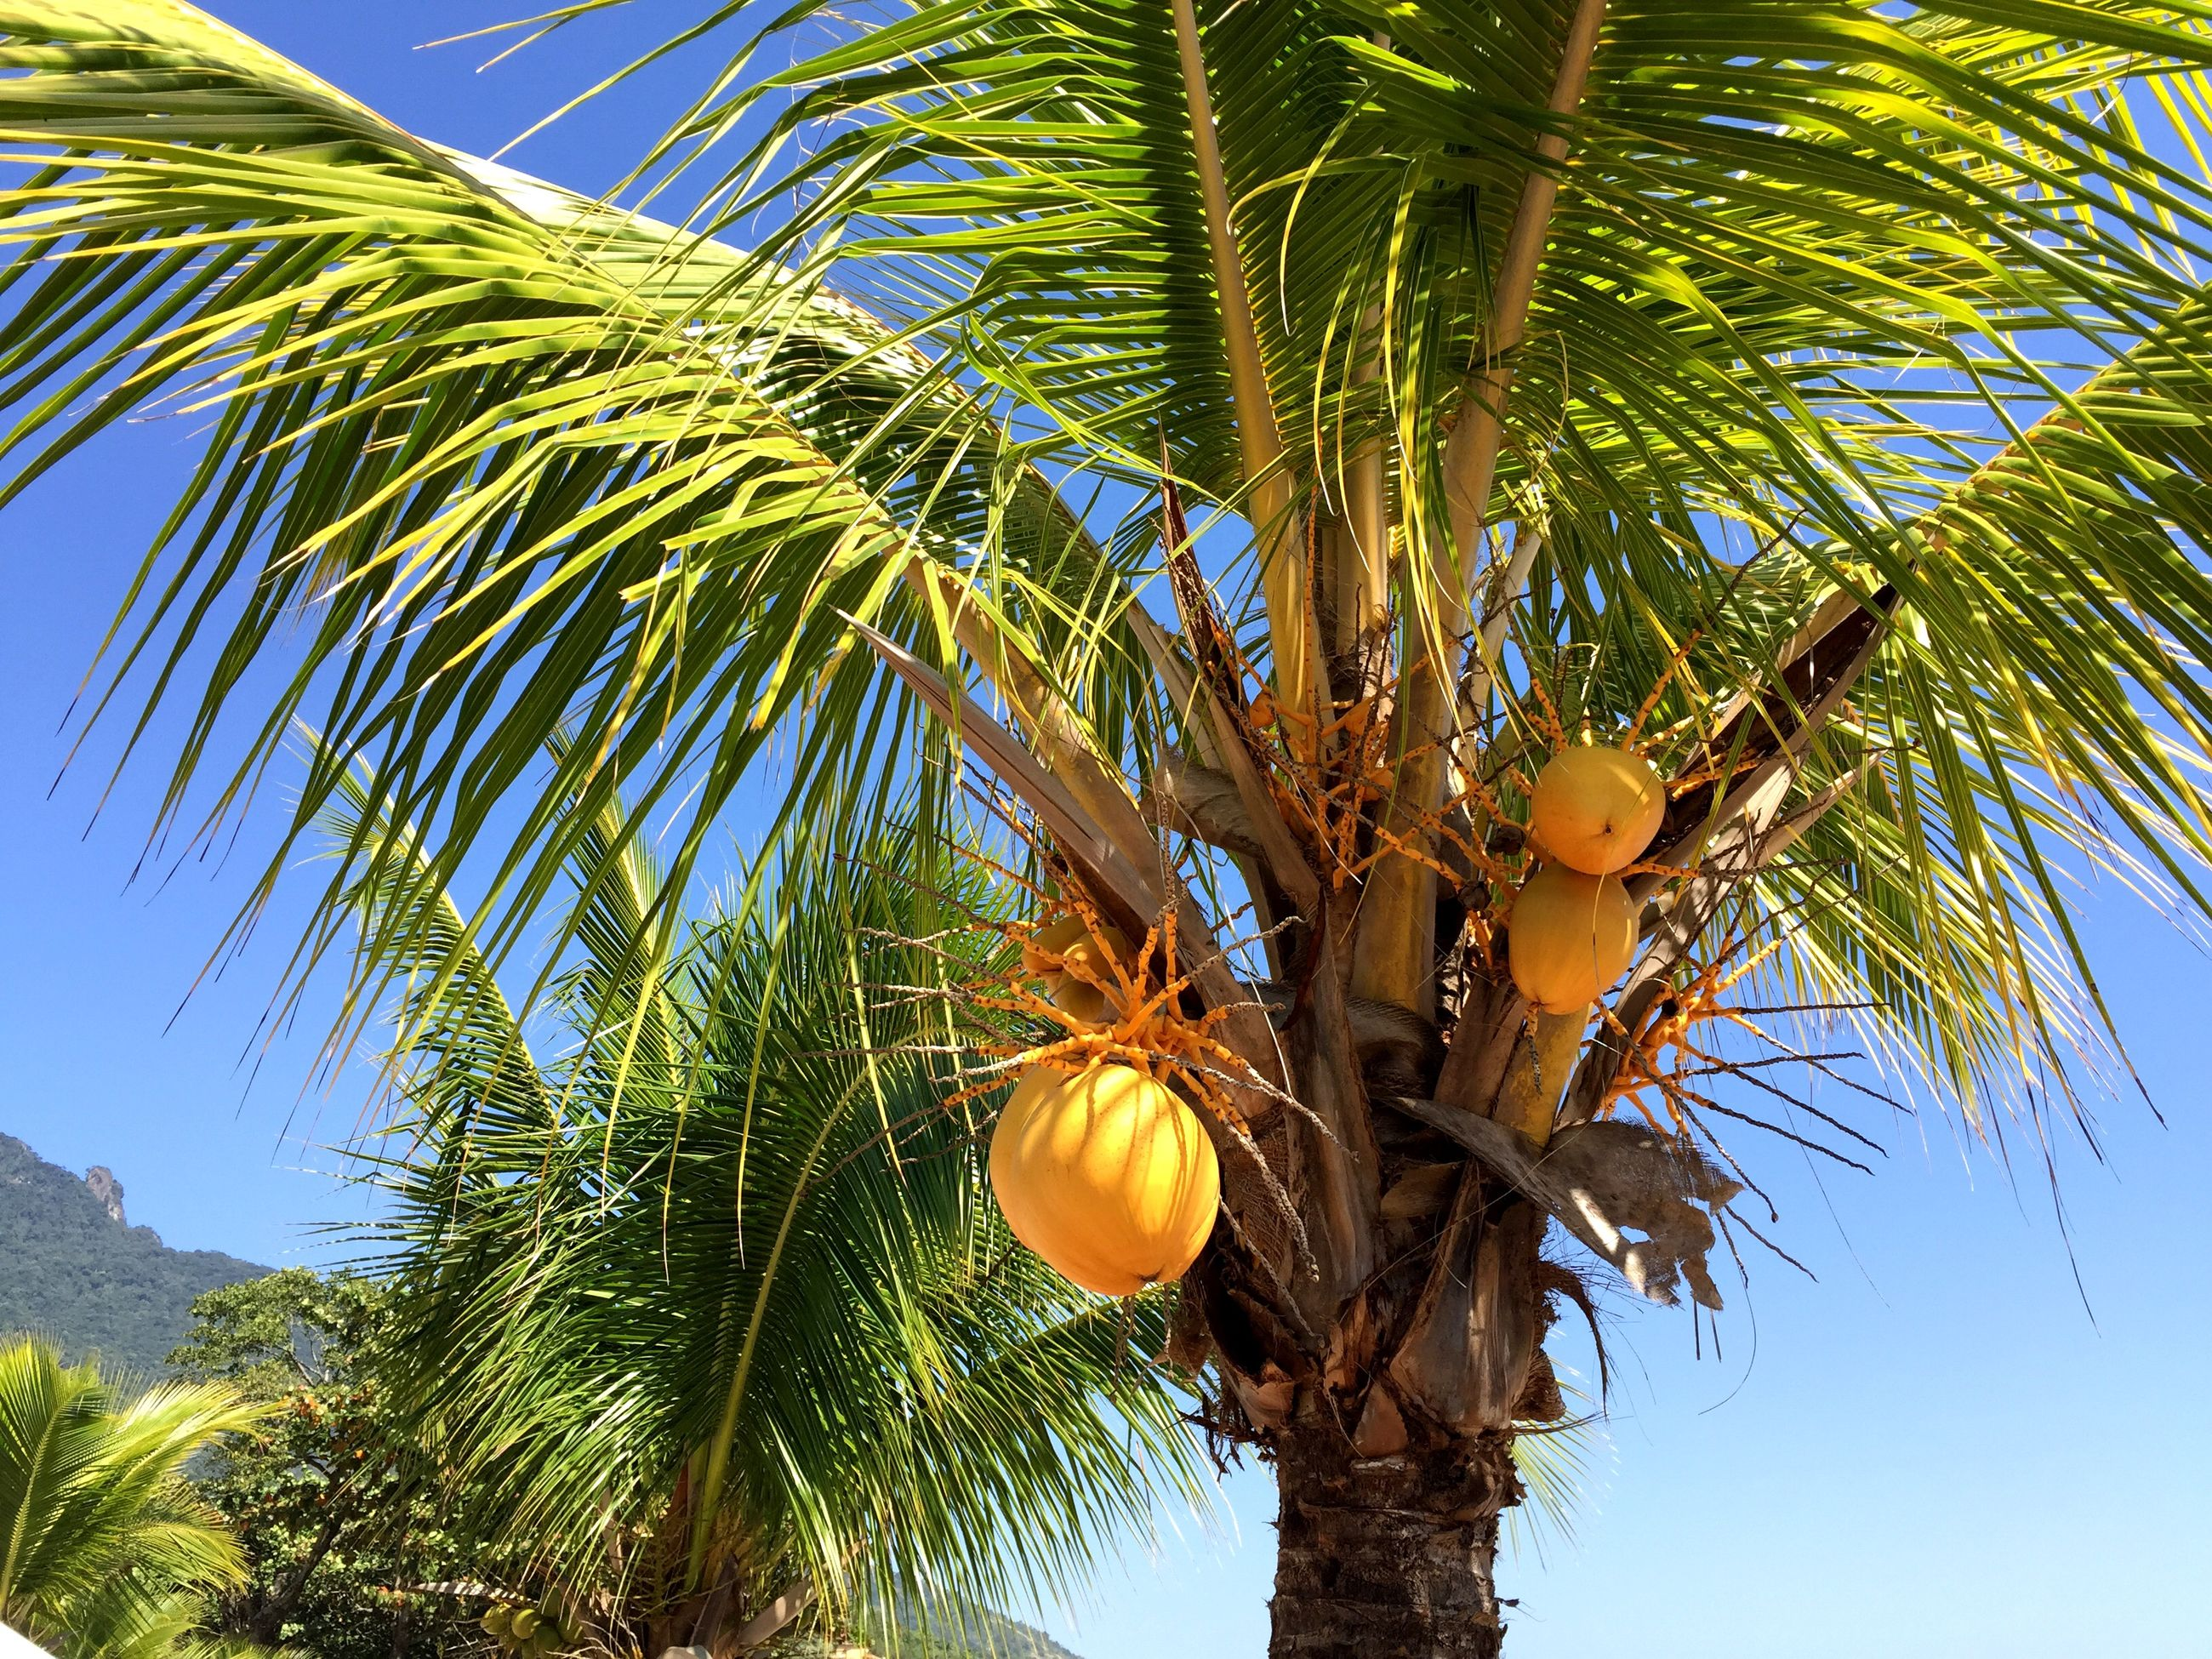 tree, low angle view, palm tree, fruit, growth, branch, food and drink, tree trunk, coconut palm tree, clear sky, sky, nature, green color, leaf, food, palm leaf, hanging, healthy eating, day, outdoors